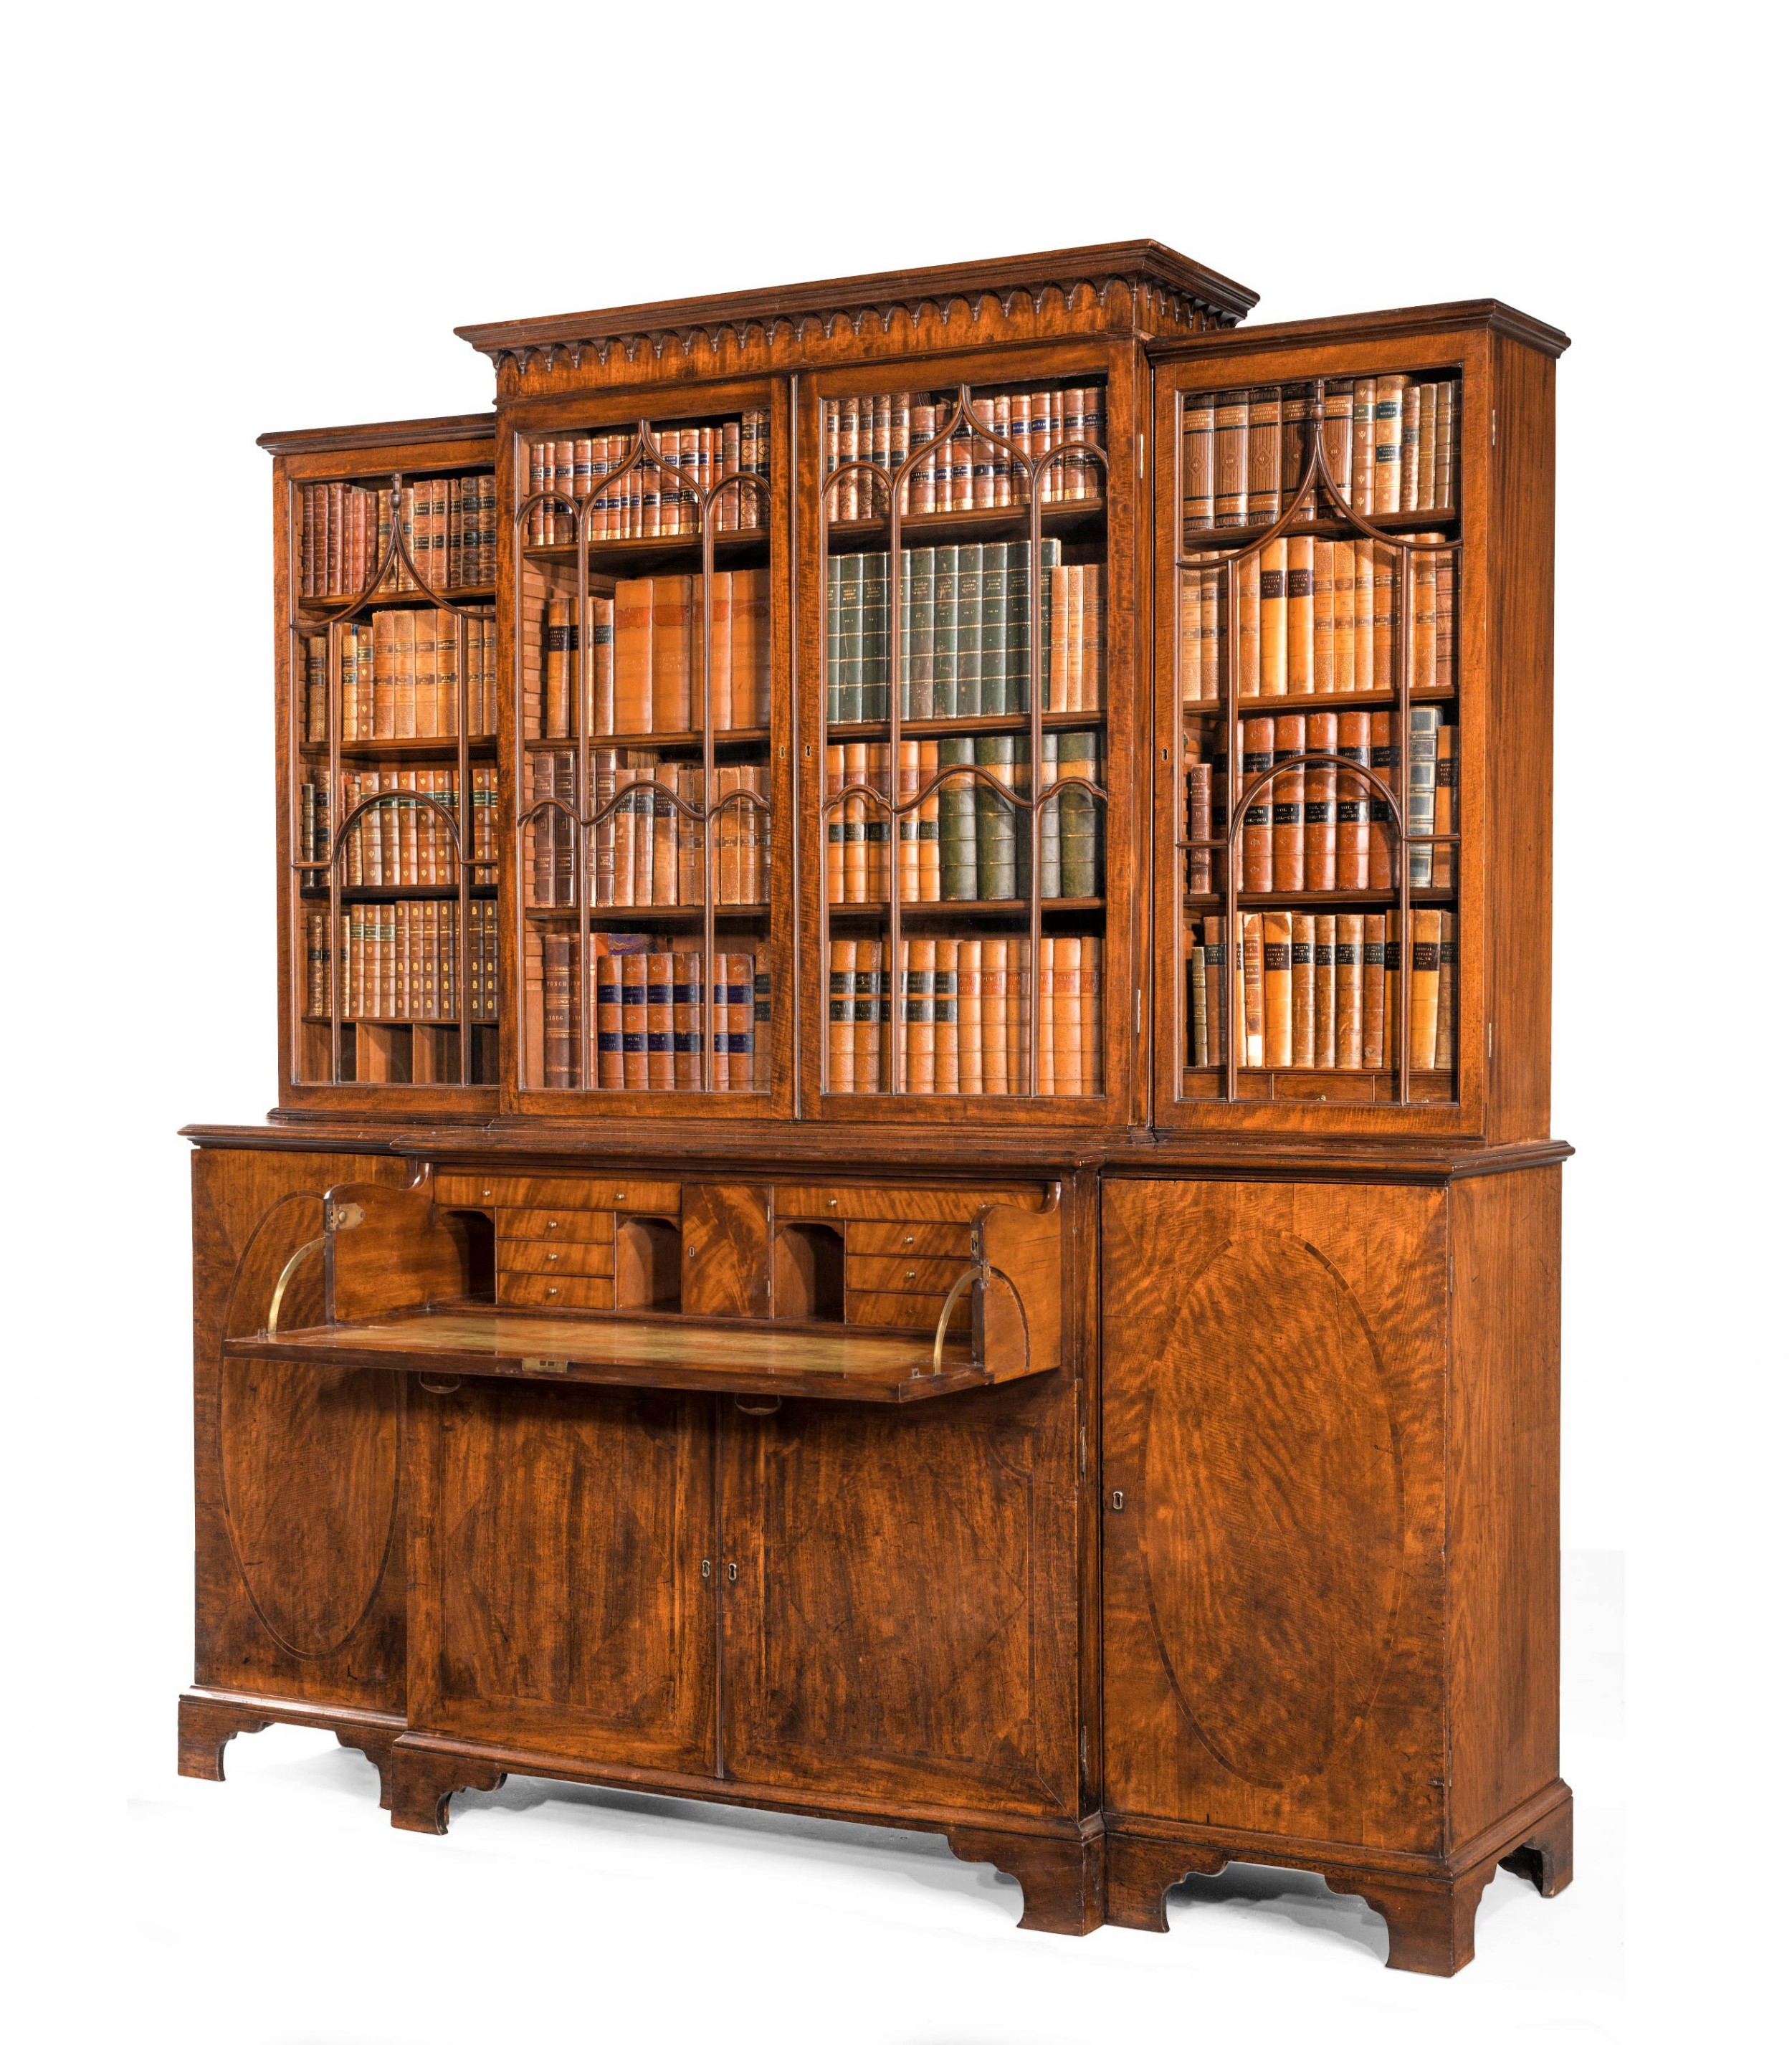 george iii period mahogany breakfront bookcase the doors with contrasting oval panels